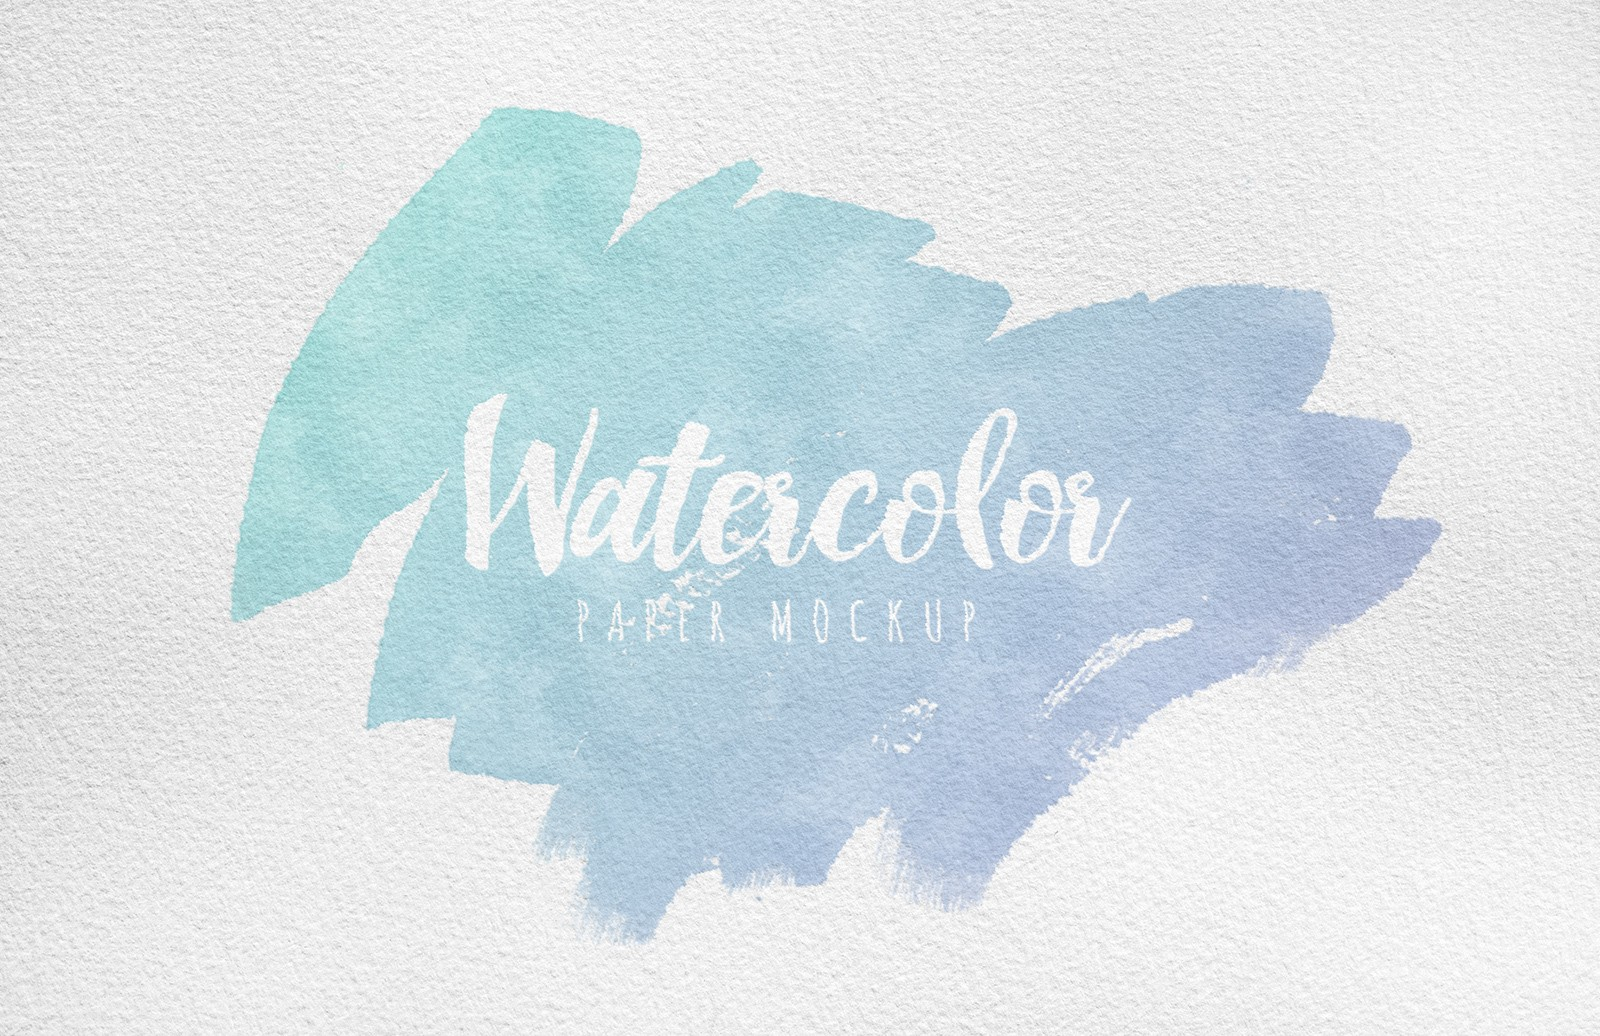 Large Watercolor Paper Mockup Preview 1